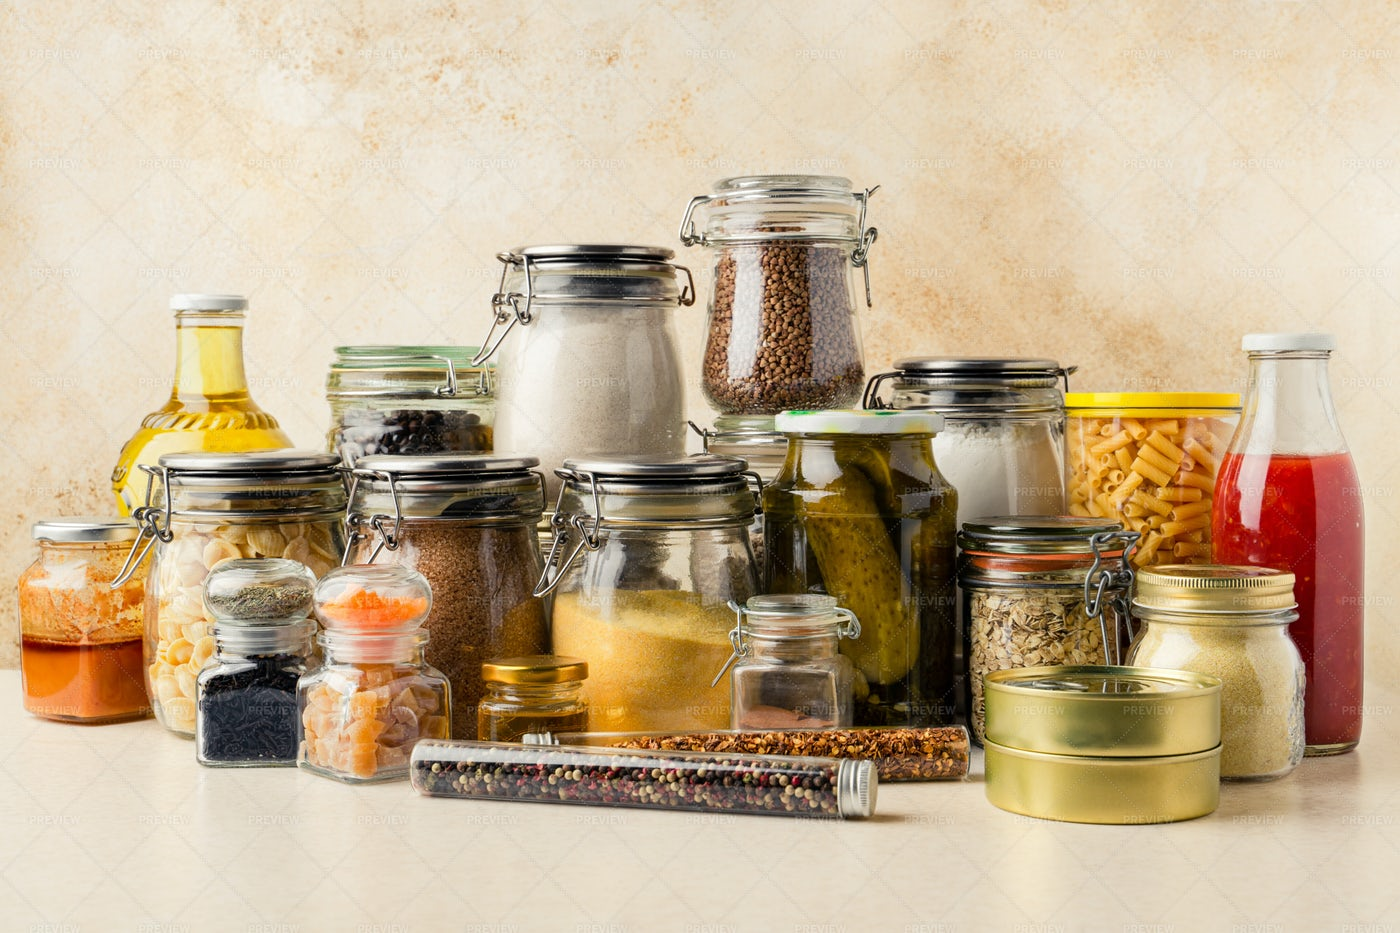 Collection Of Food Supplies: Stock Photos